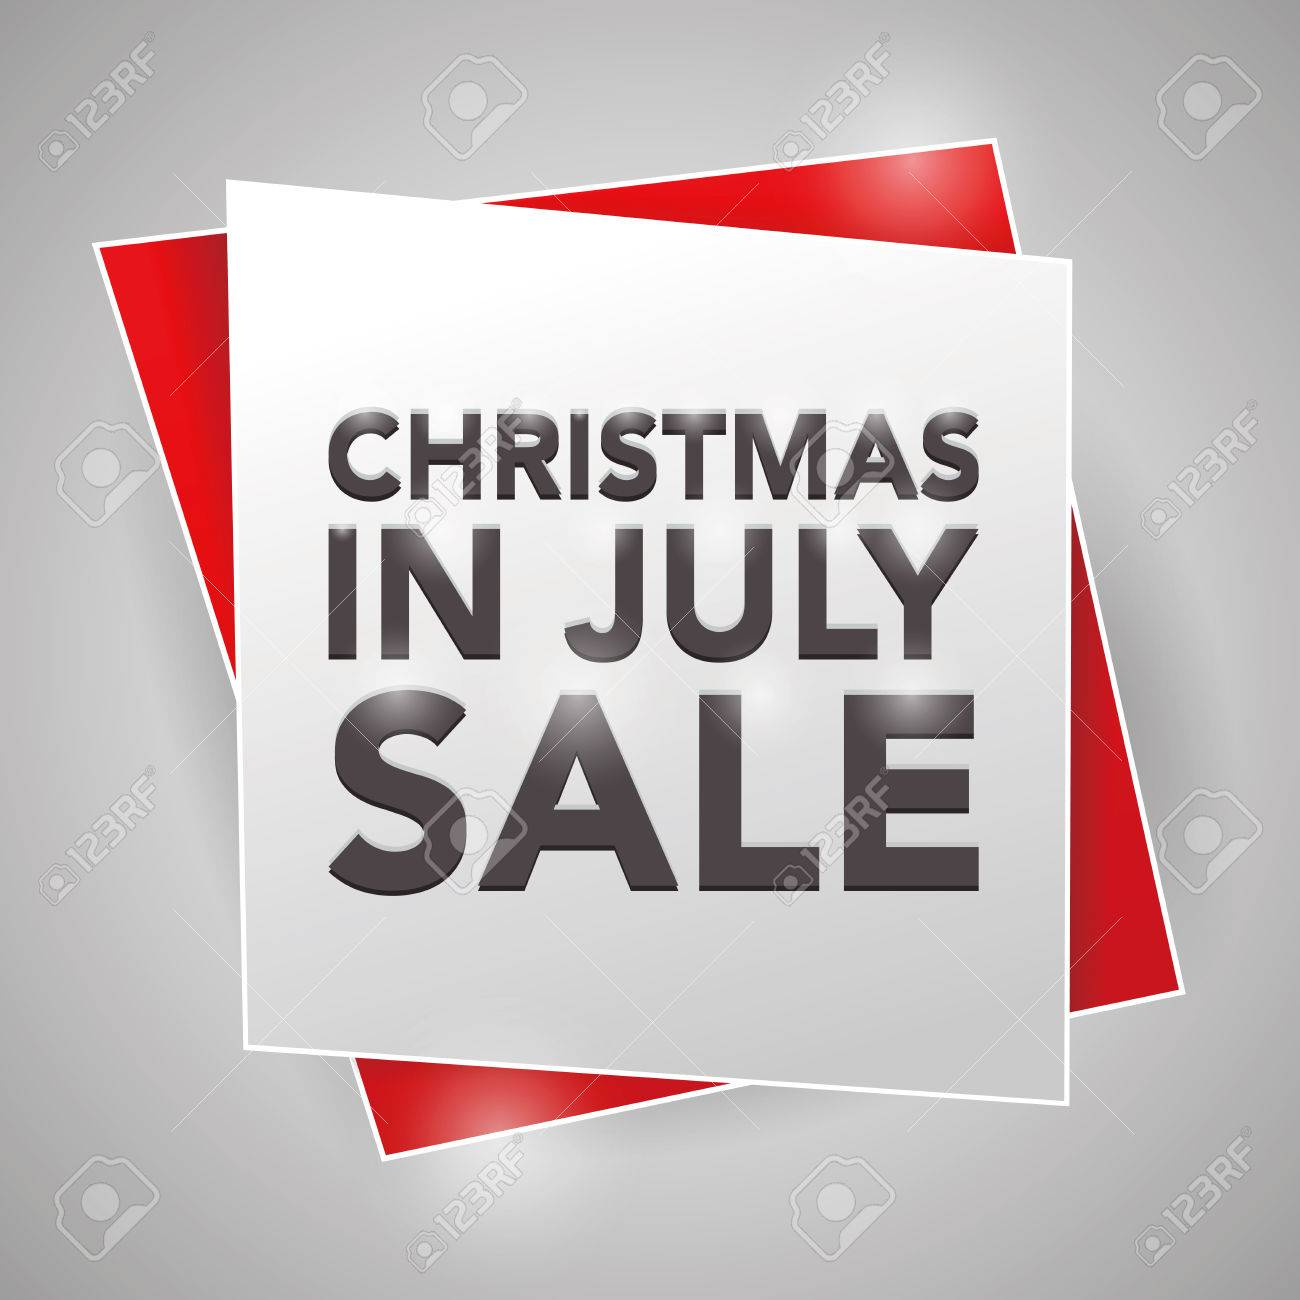 Christmas In July Royalty Free Images.Christmas In July Sale Poster Design Element